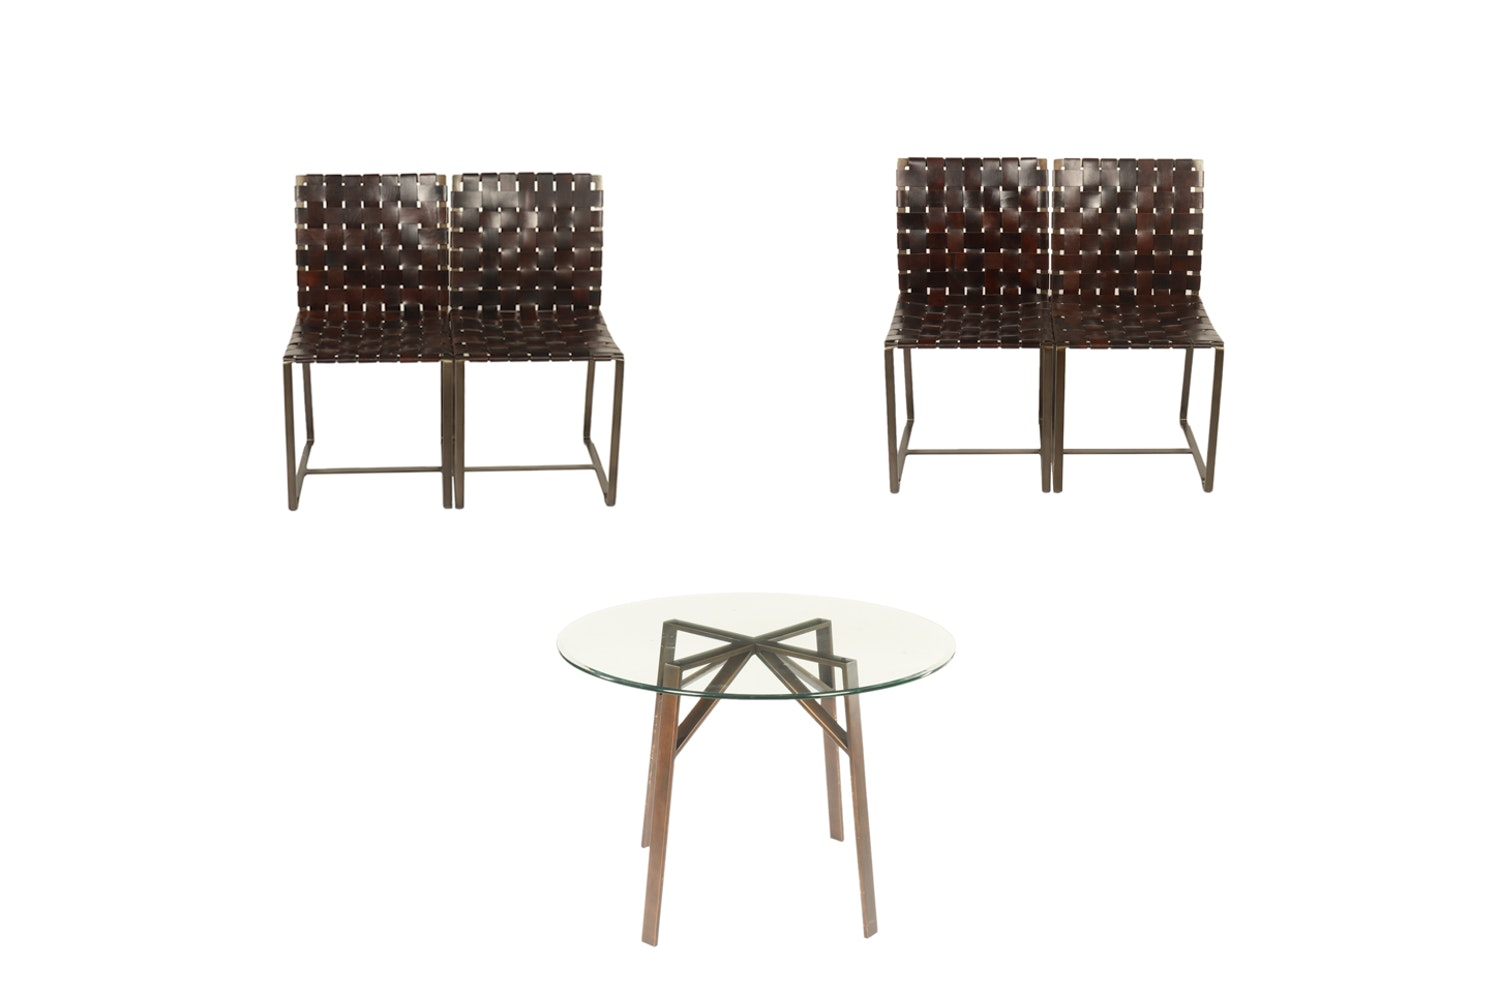 Contemporary Glass Table with Woven Leather Chairs by Crate & Barrel